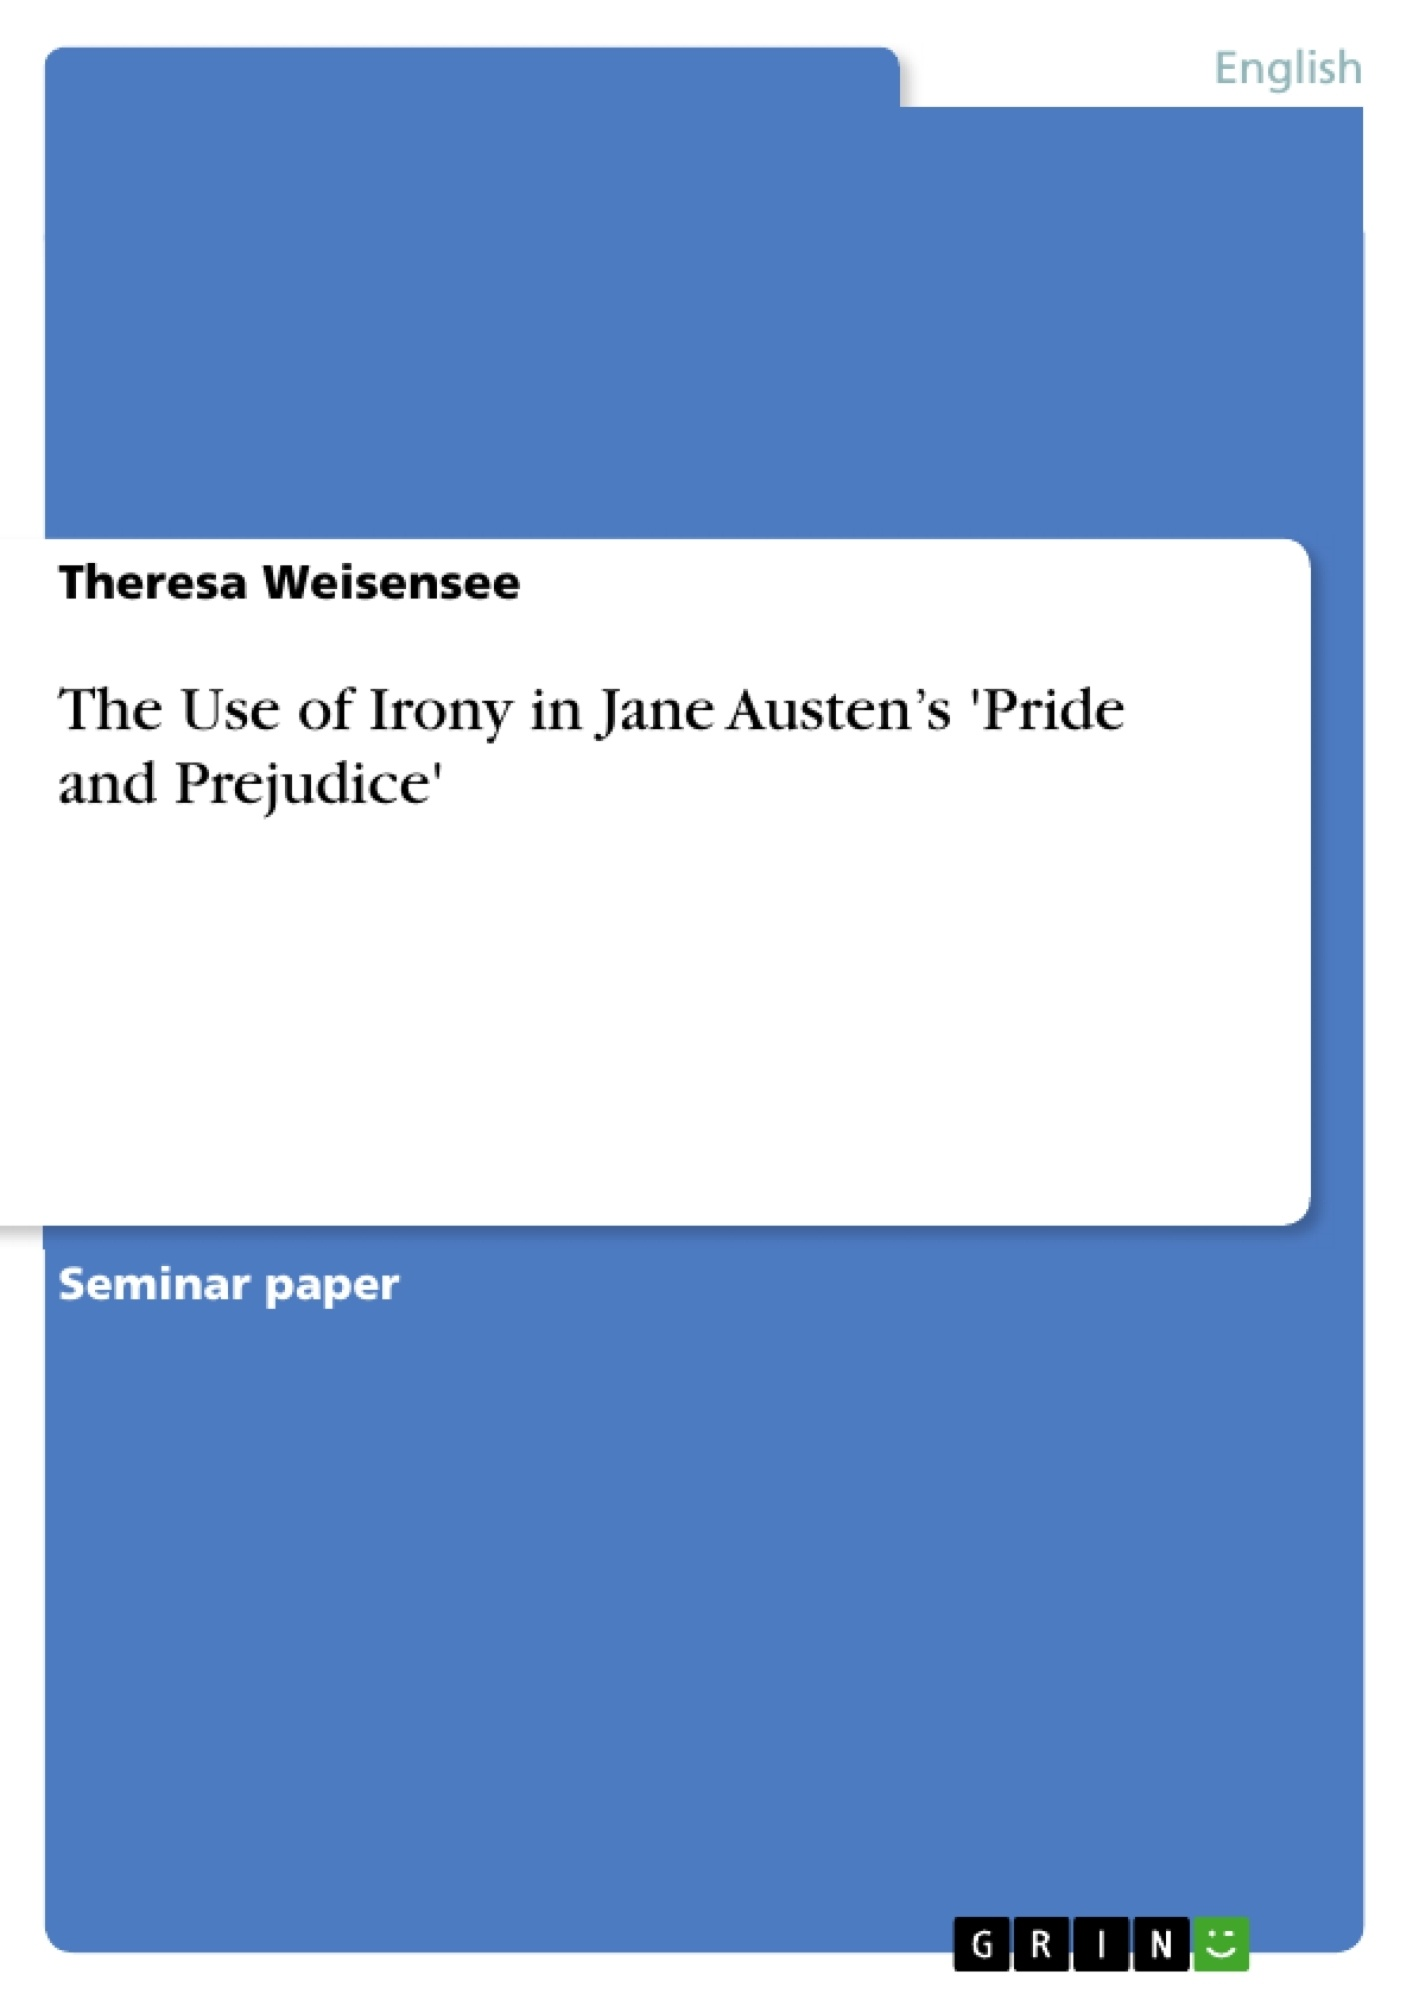 the use of irony in jane austen s pride and prejudice publish upload your own papers earn money and win an iphone 7